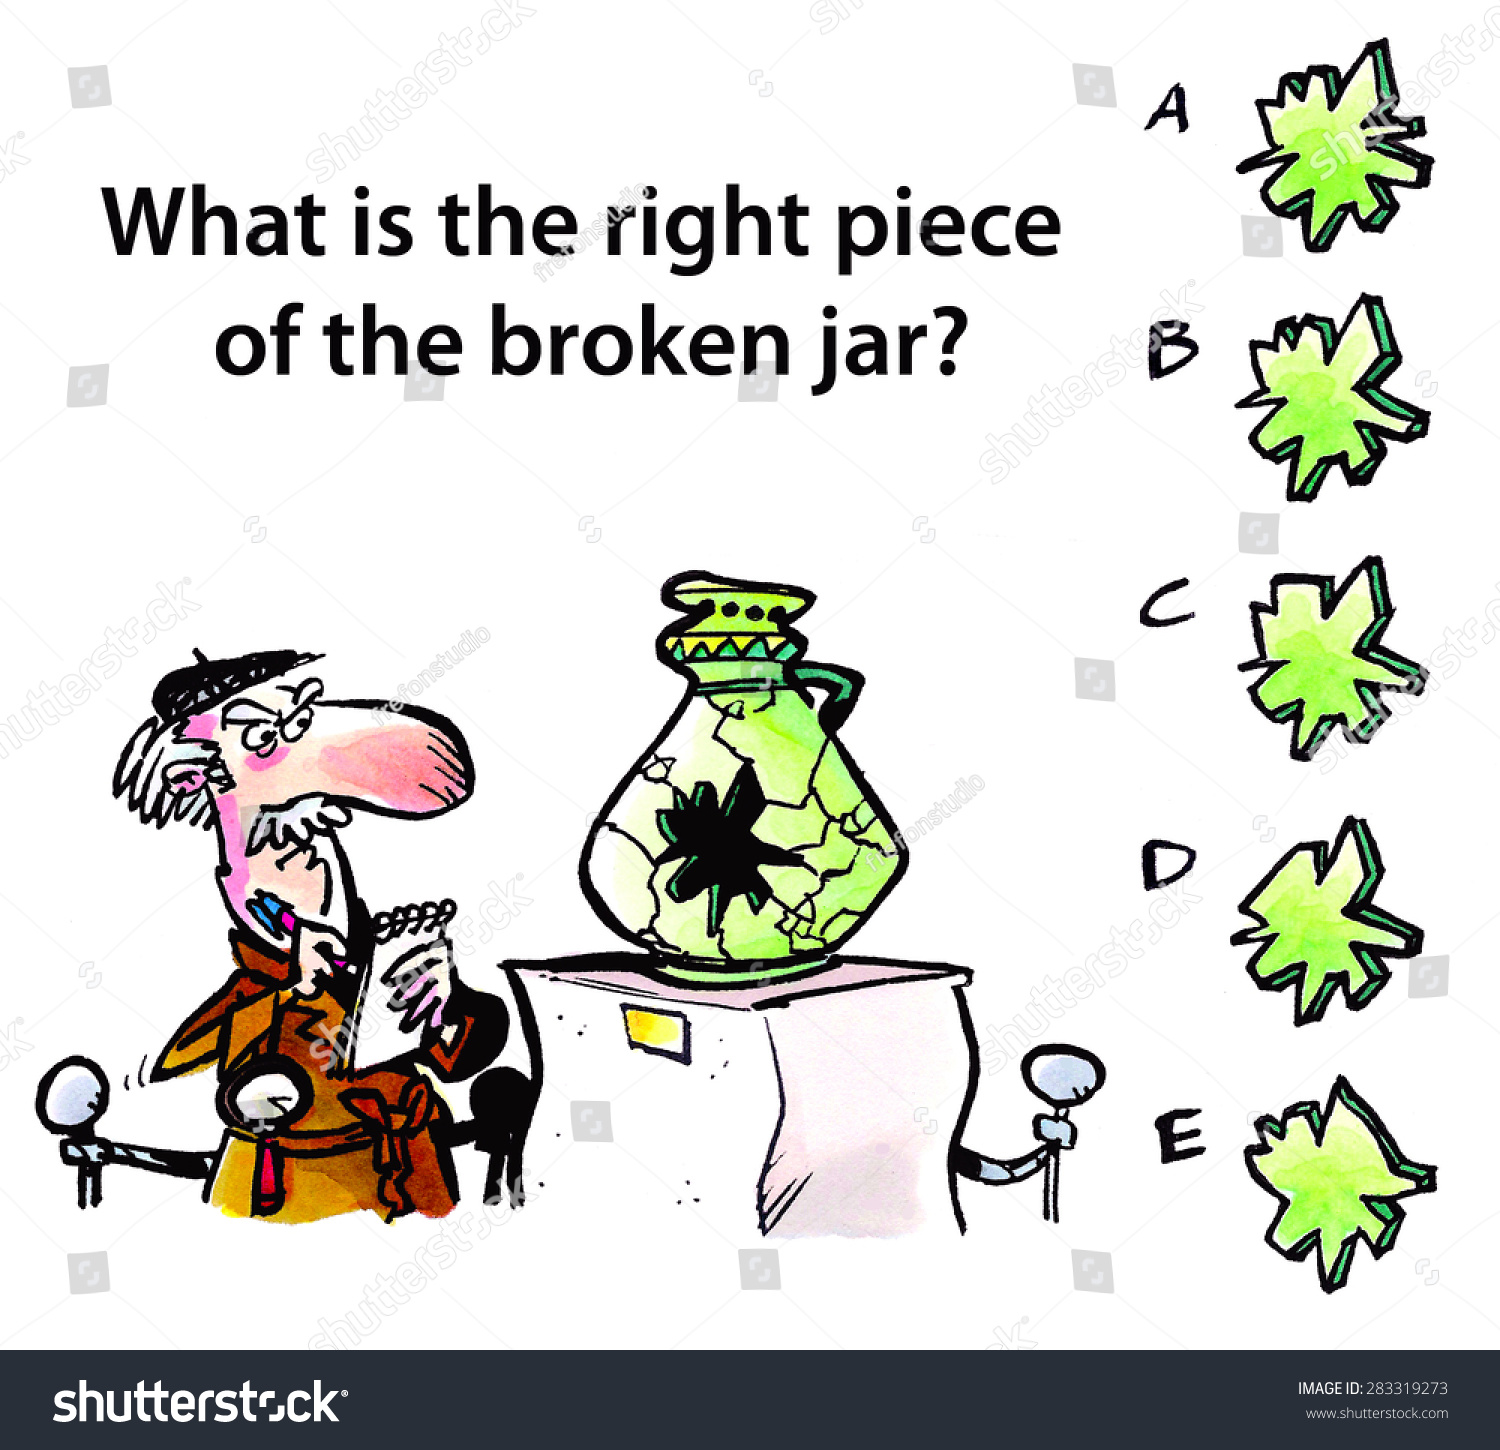 Generous Crossword Puzzle For Kids Tall Fire Staff Puzzle Shaped Griddlers Puzzles Free New York Times Crossword Puzzle Youthful Picture Puzzle Crossword Clue SoftPuzzle Dragon X Fun Puzzle Game Detective Broken Jar Stock Illustration 283319273 ..